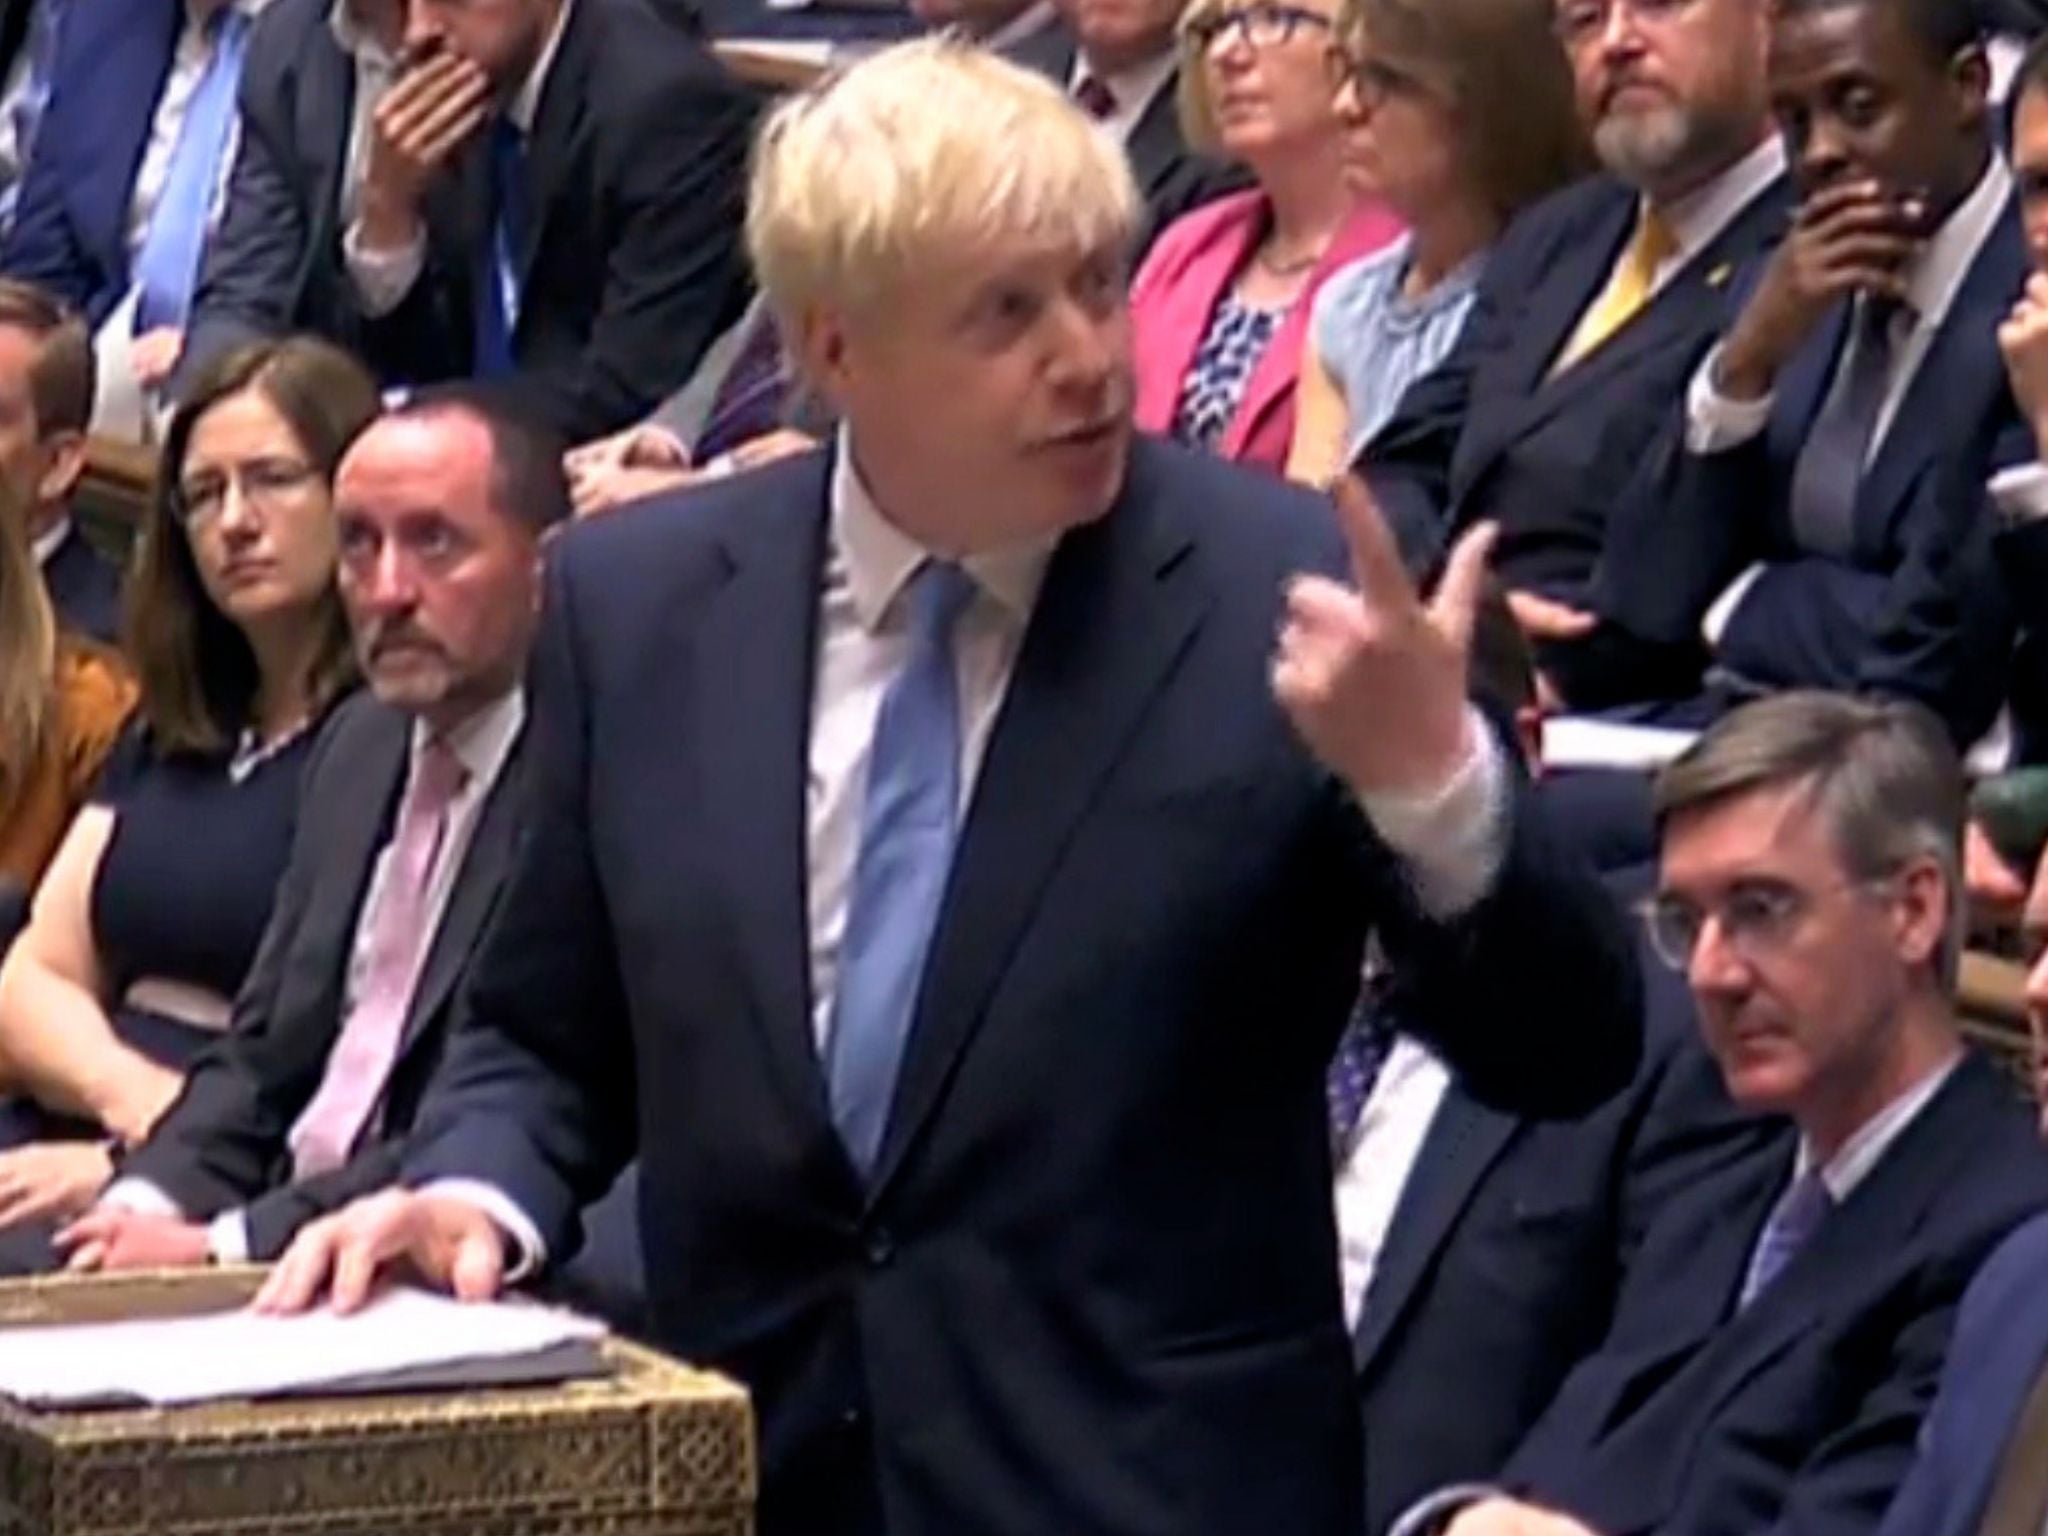 Brexit: Boris Johnson rips up Theresa May's immigration plan and refuses to set limits on new arrivals